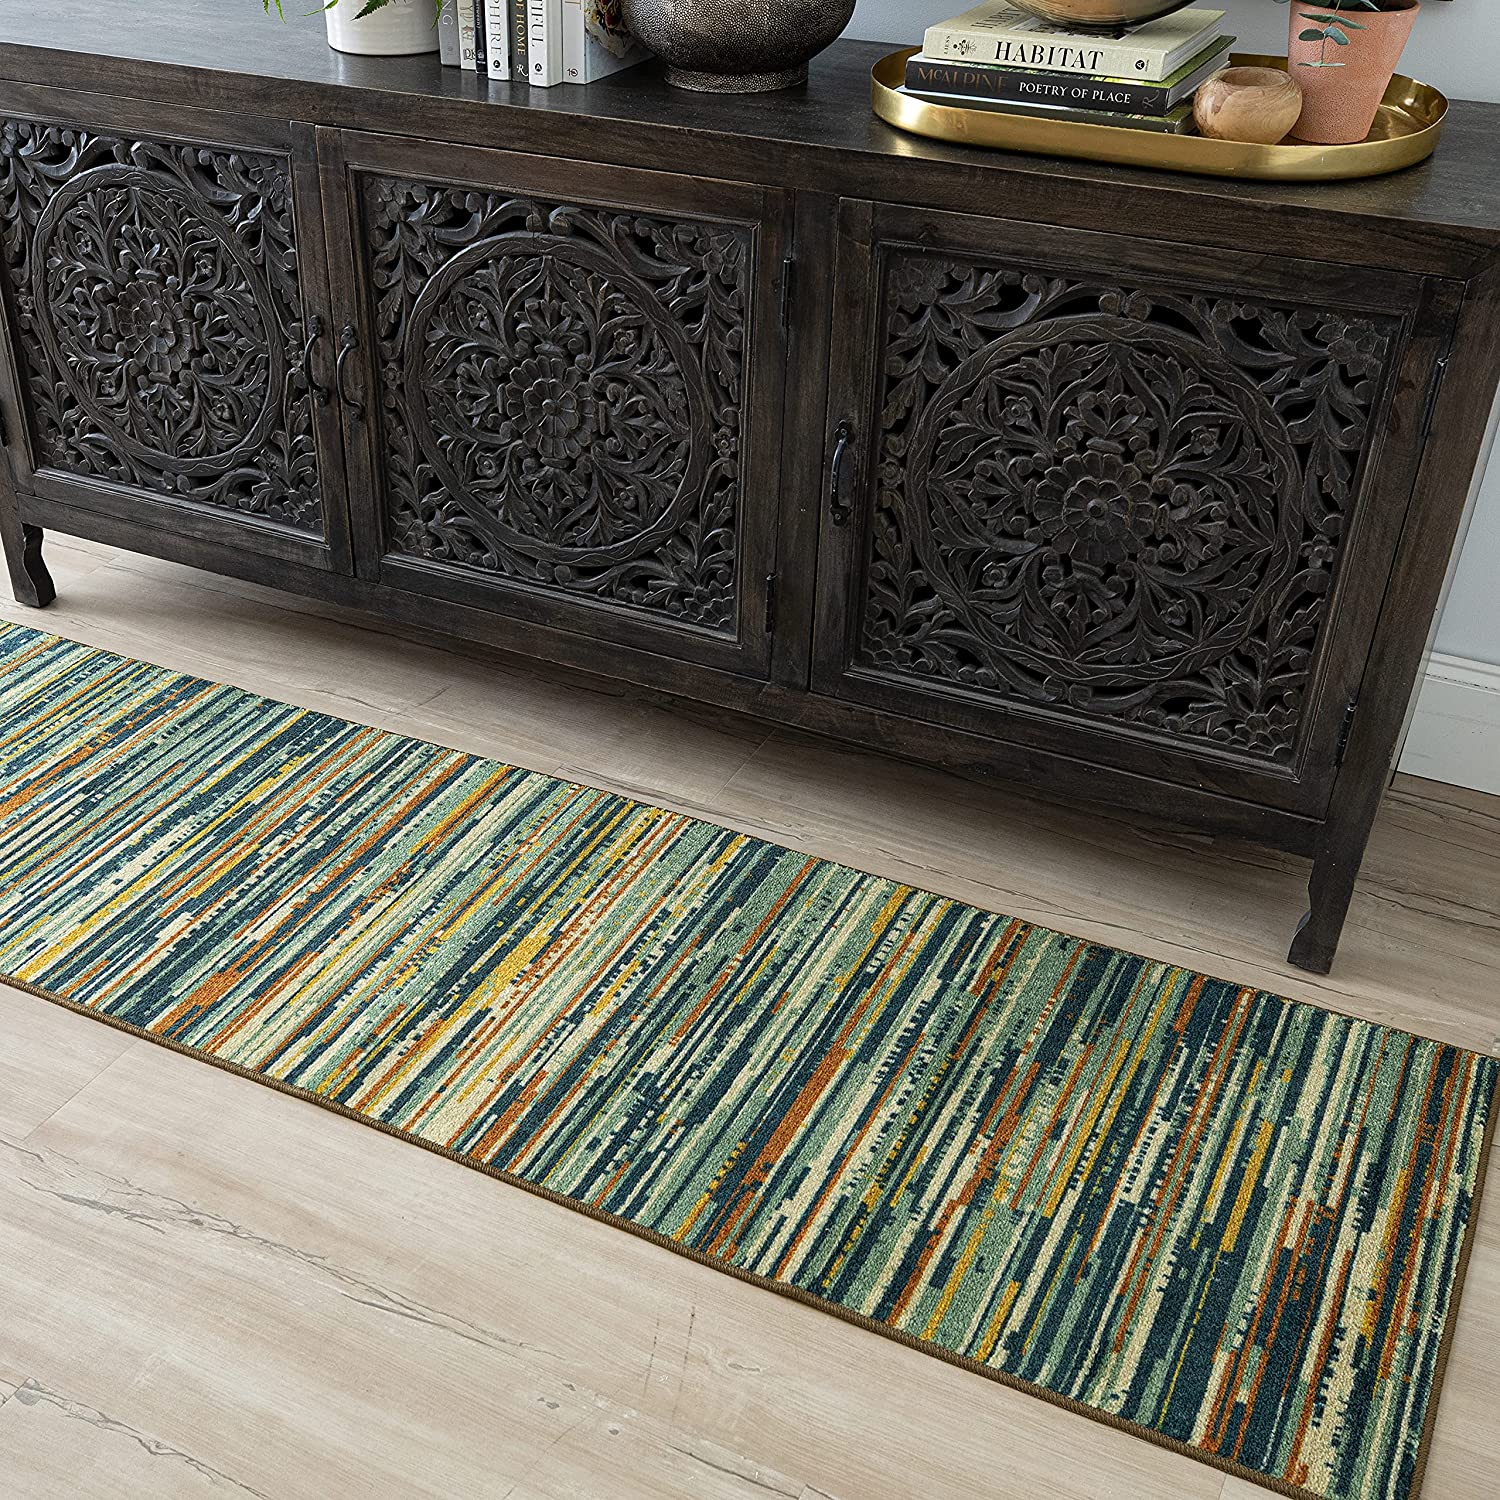 Mohawk Home Santos Area Rugs X 8' Popular products Blue National products 2'